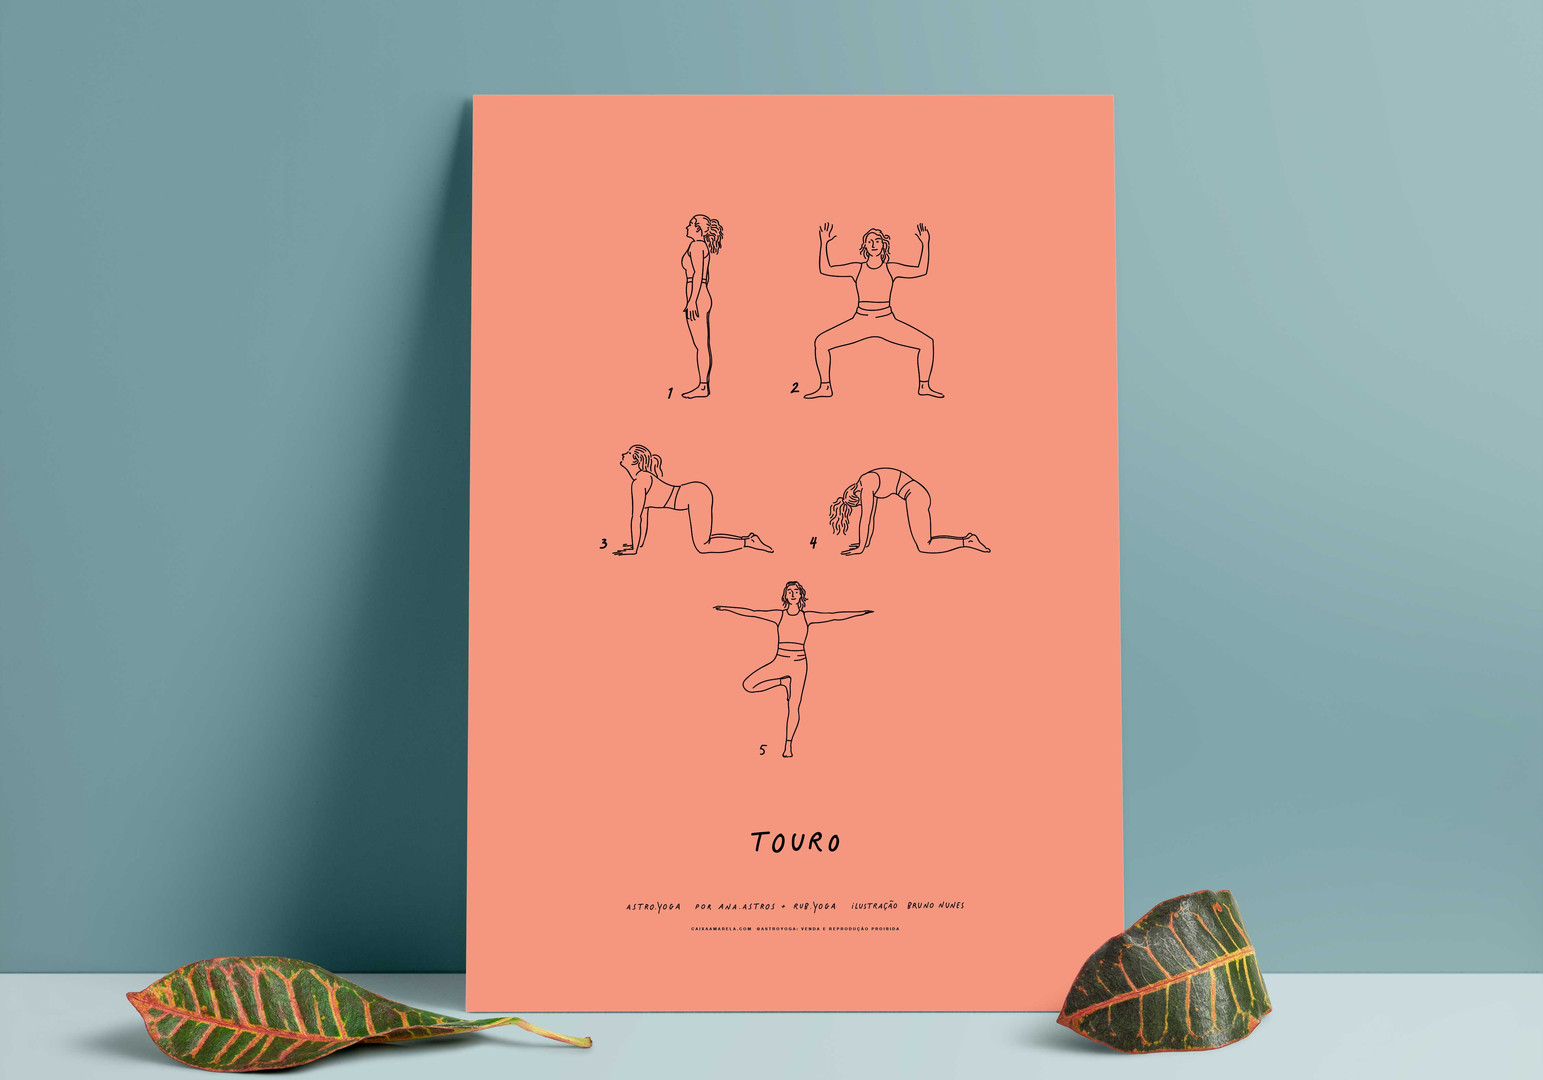 2_AstroYoga_Poster_Tourobx.jpg